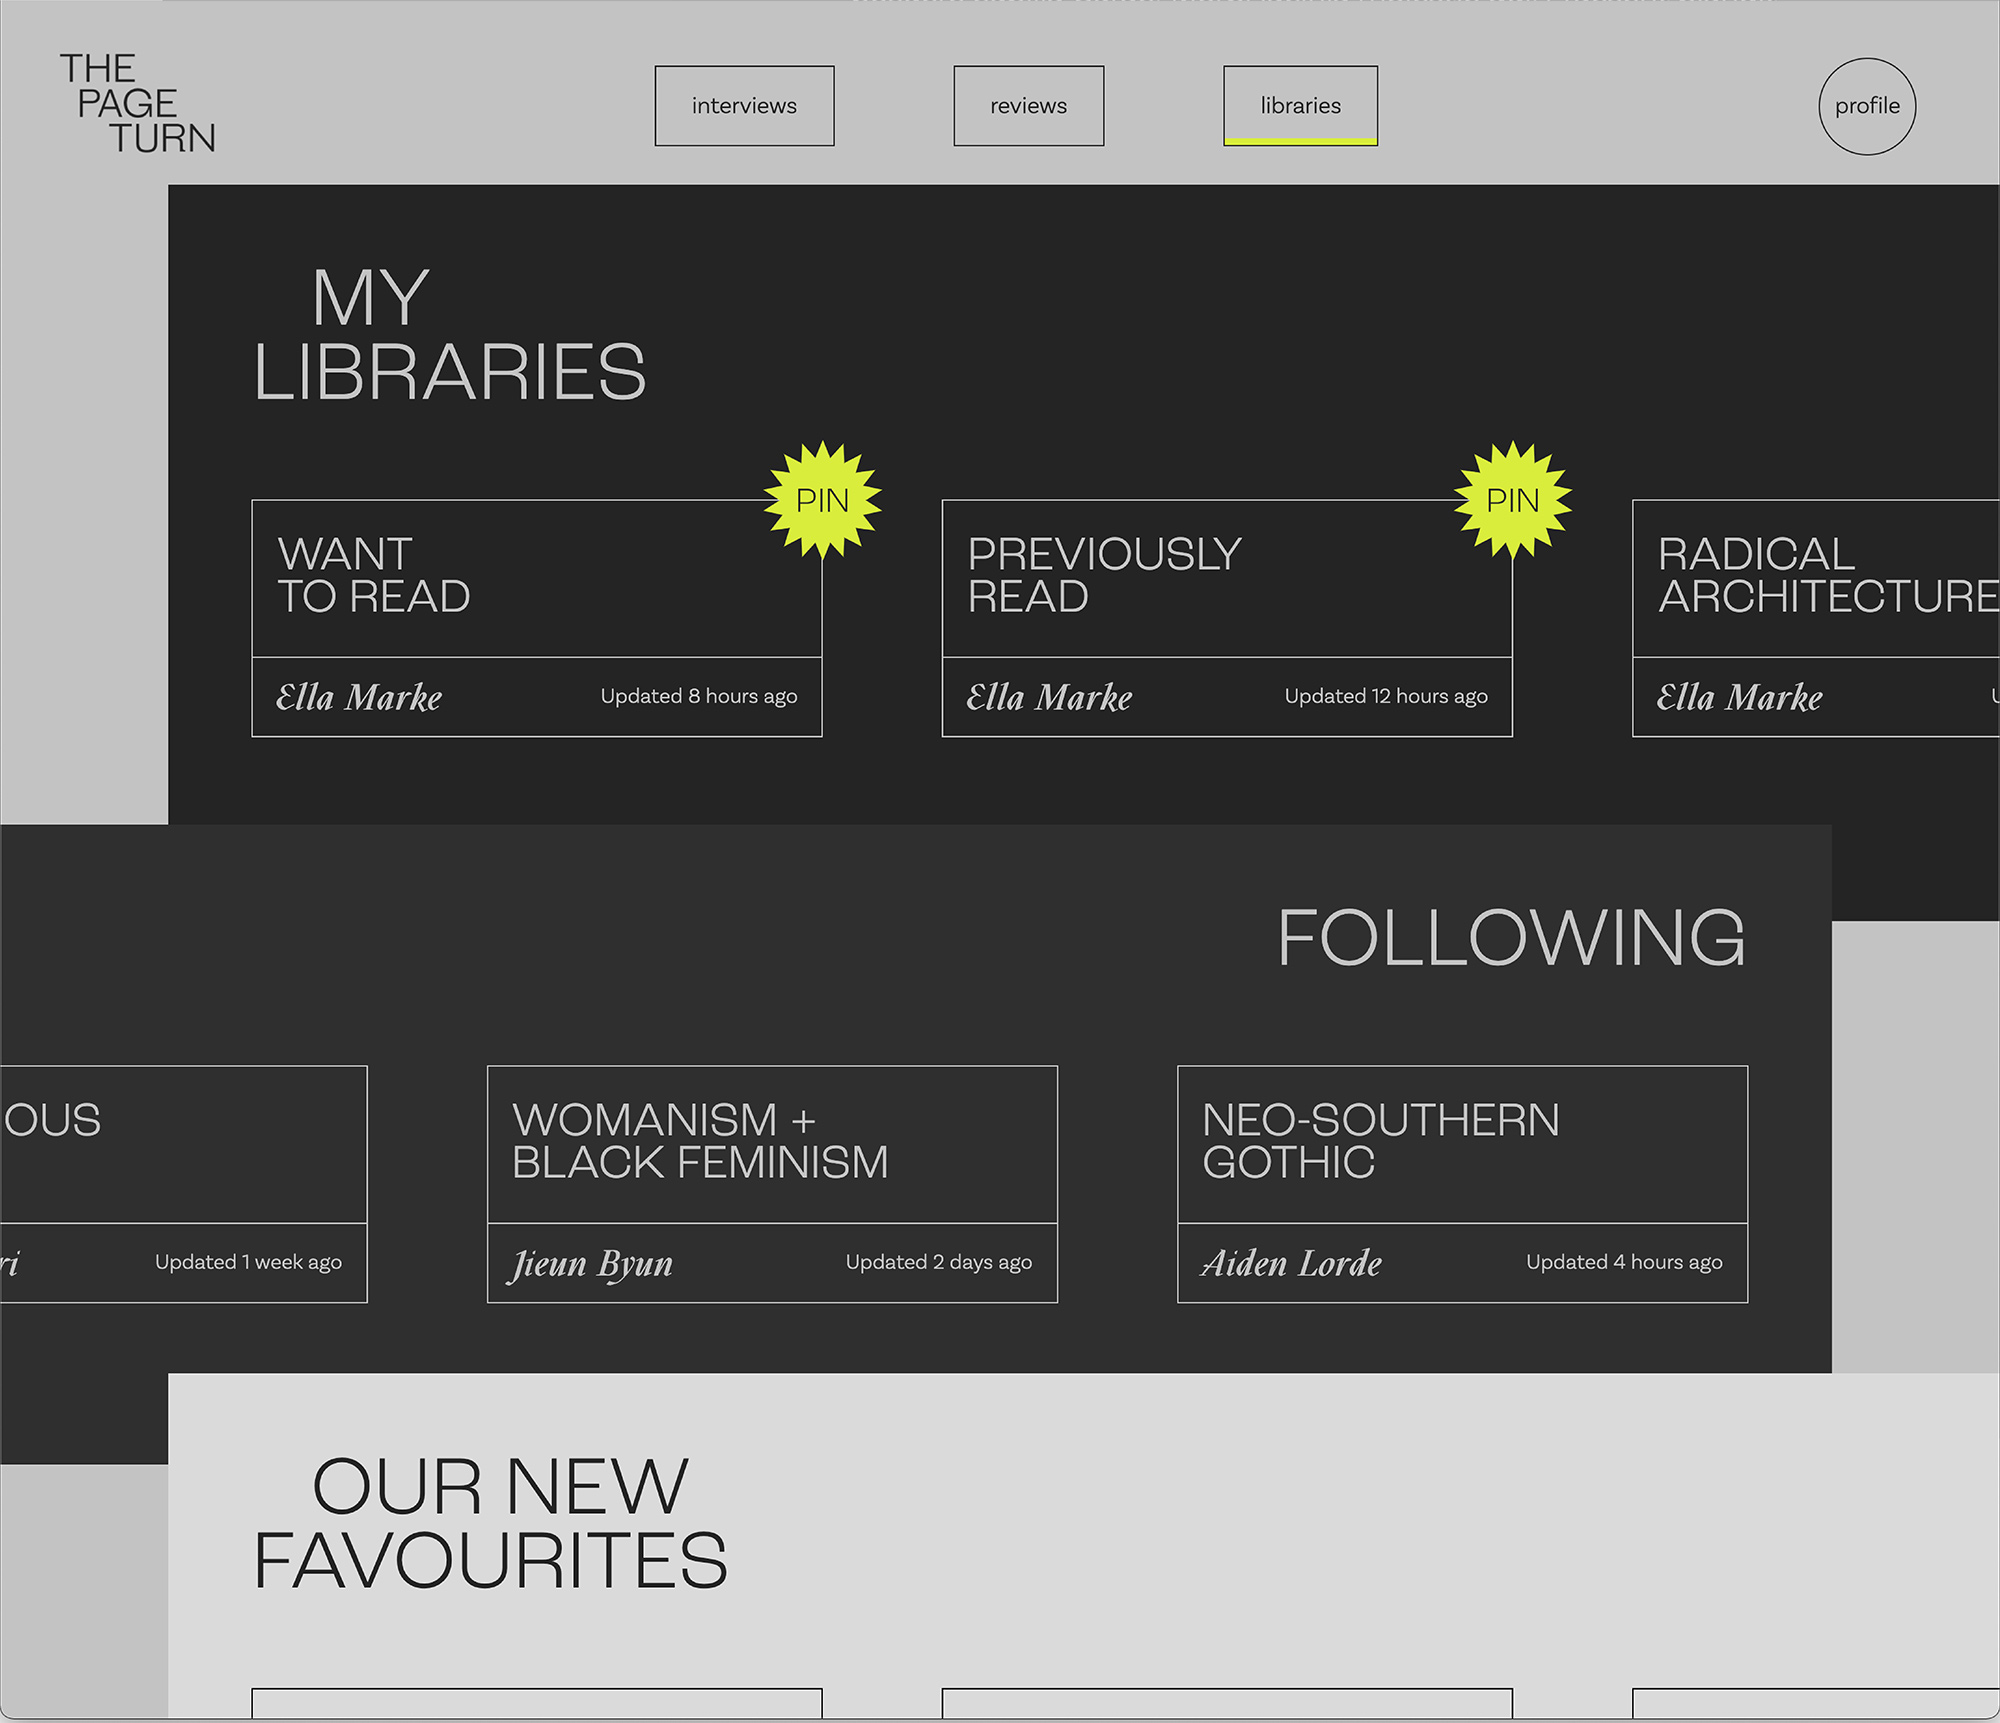 the library page of the website, with lists of libraries to follow